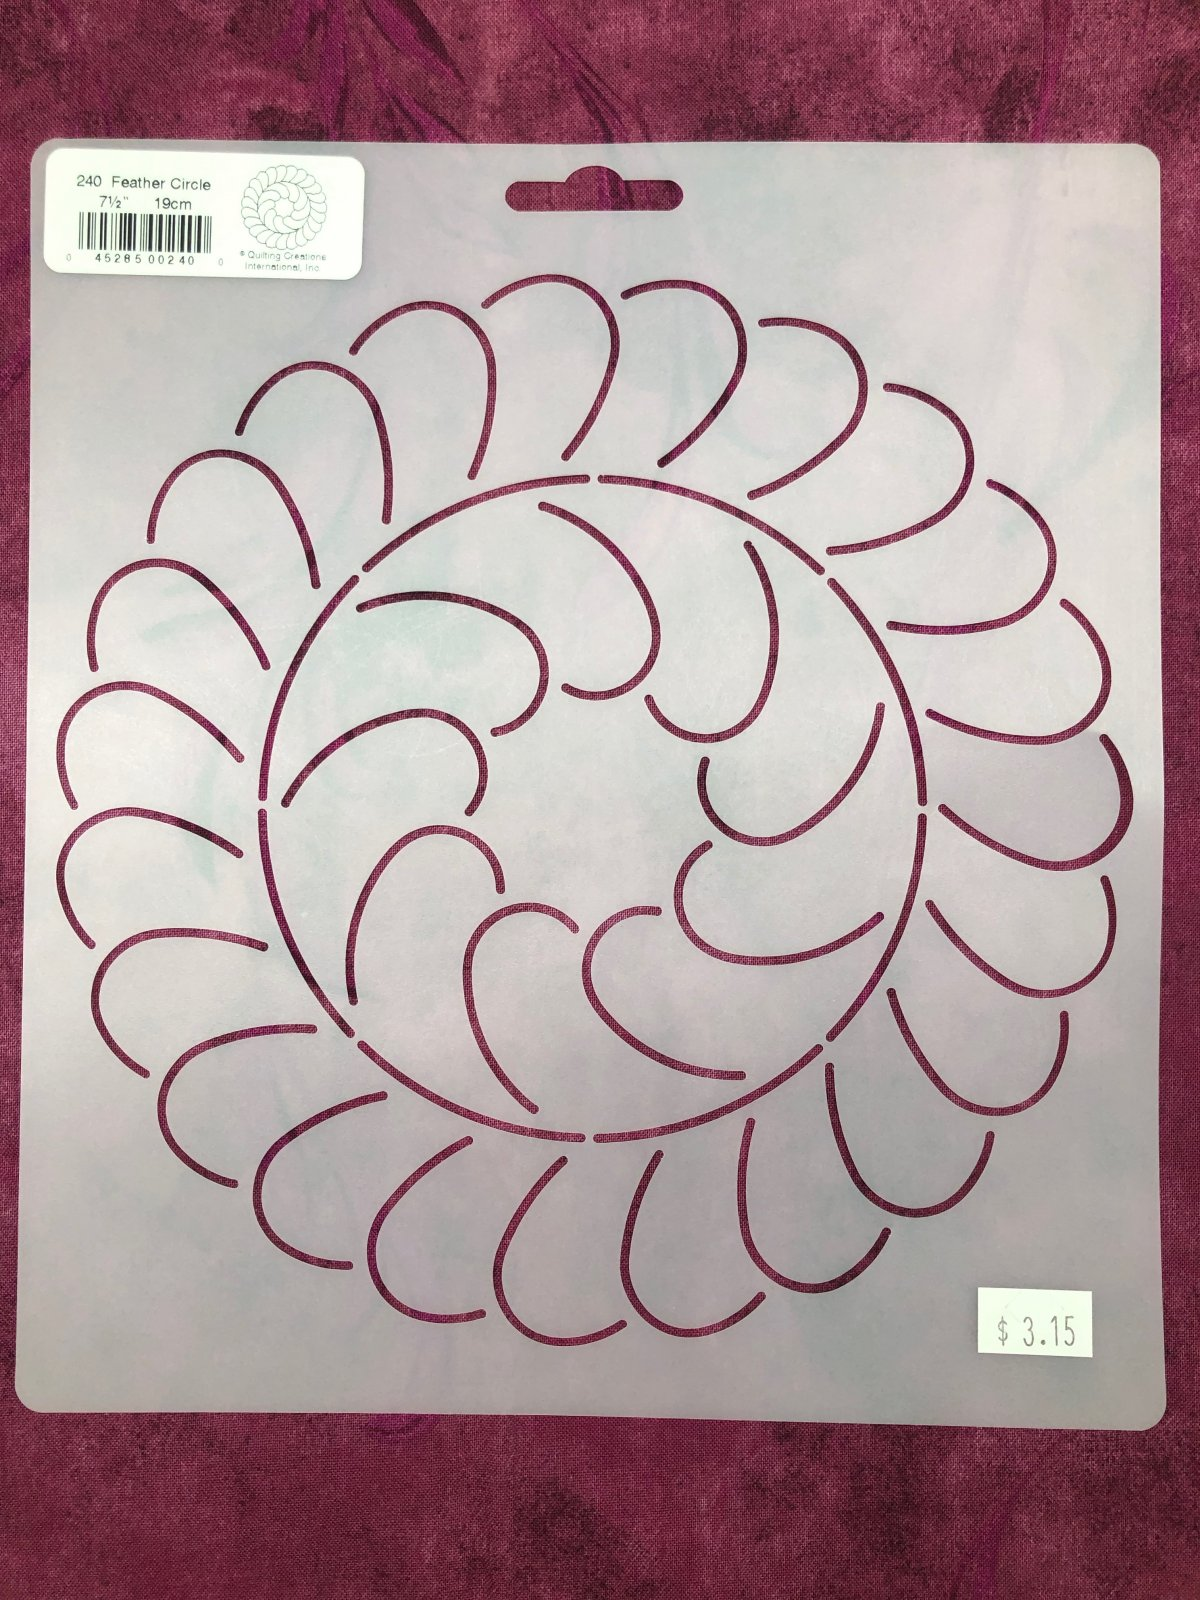 10-1//2 x 7-1//2 x 1-1//2 Quilting Creations Cable Border and Corner Quilt Stencil